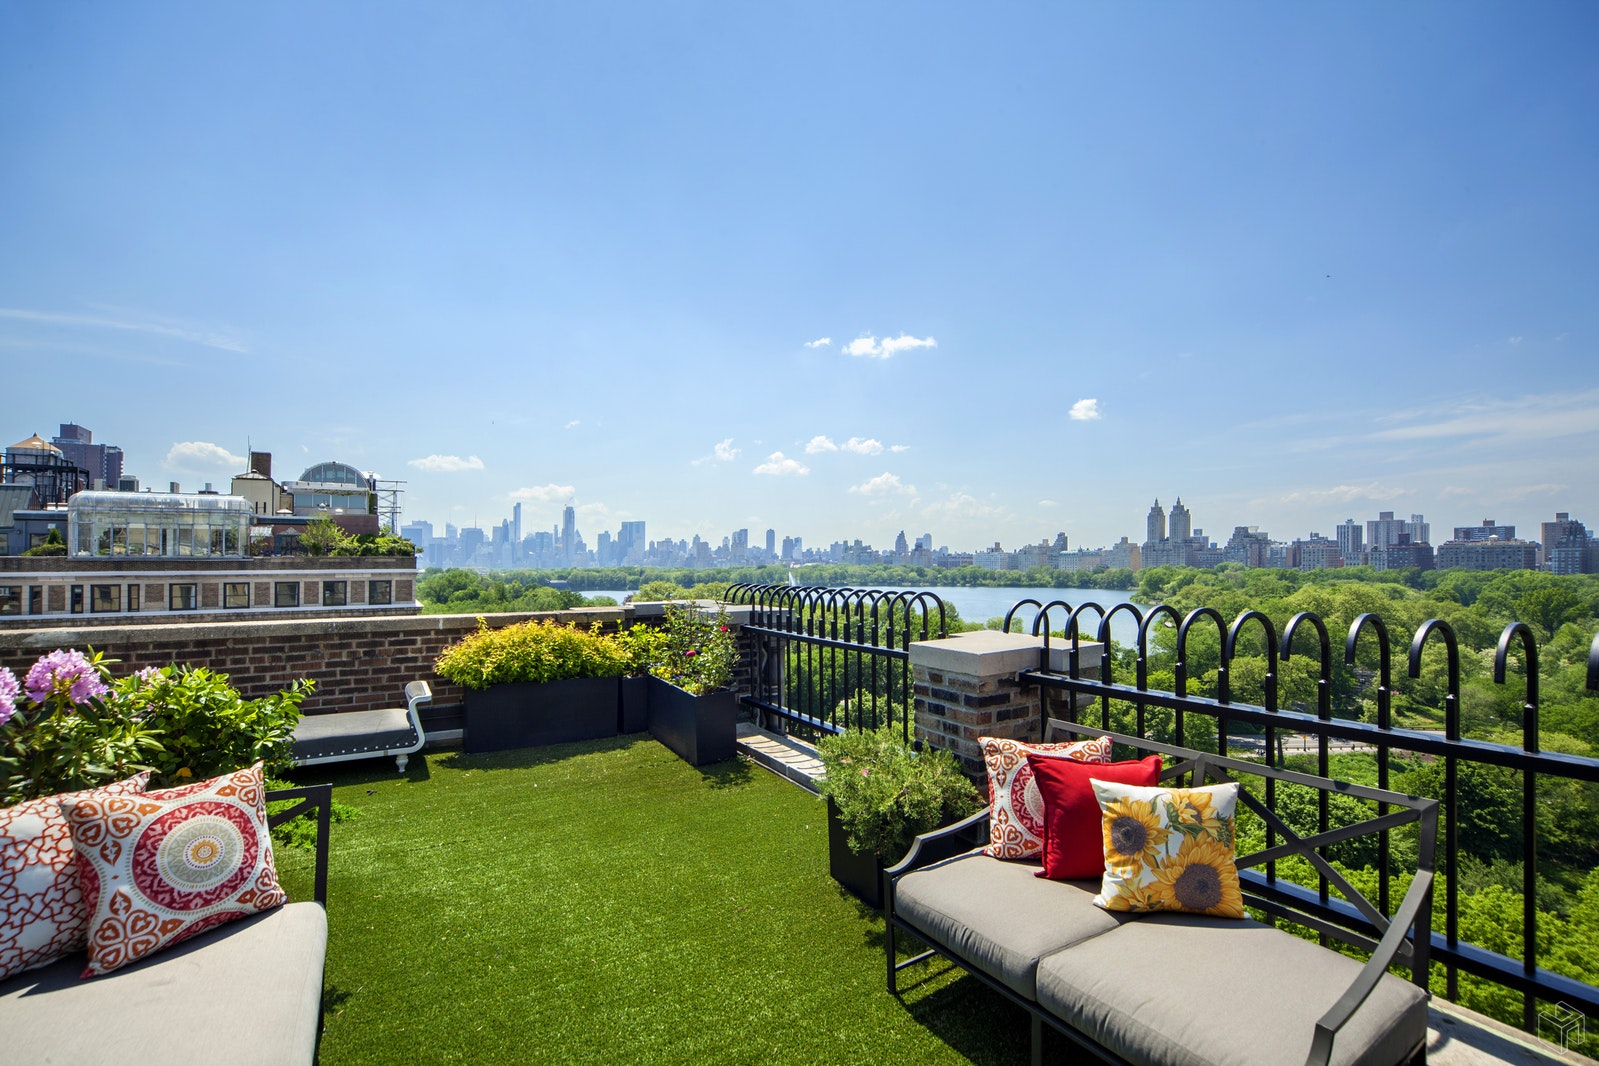 Located on Fifth Avenue's Museum Mile, this penthouse duplex boasts panoramic views of Central Park, the reservoir, and  dramatic skyline views to Midtown Manhattan and beyond! This meticulously renovated home features a grand, corner living room with southwest exposure, wood burning fireplace and stunning views over looking Central Park. On the first level, the formal dining room and library/guest room have direct park views. There is a top of the line windowed chef's kitchen, den/media room with built in banquette, separate pantry and laundry, office/staff's room and more! Upstairs, there are 4 additional bedrooms. The master suite features a private ensuite marble bath with window, soaking tub and stall shower. It also has a large walk-in closet and access to the wrap terrace. The additional 3 bedrooms also have ensuite baths. The private, wrap terrace is perfect for entertaining with its captivating views of Central Park.  Located in a top prewar coop. Shown by private appointment.